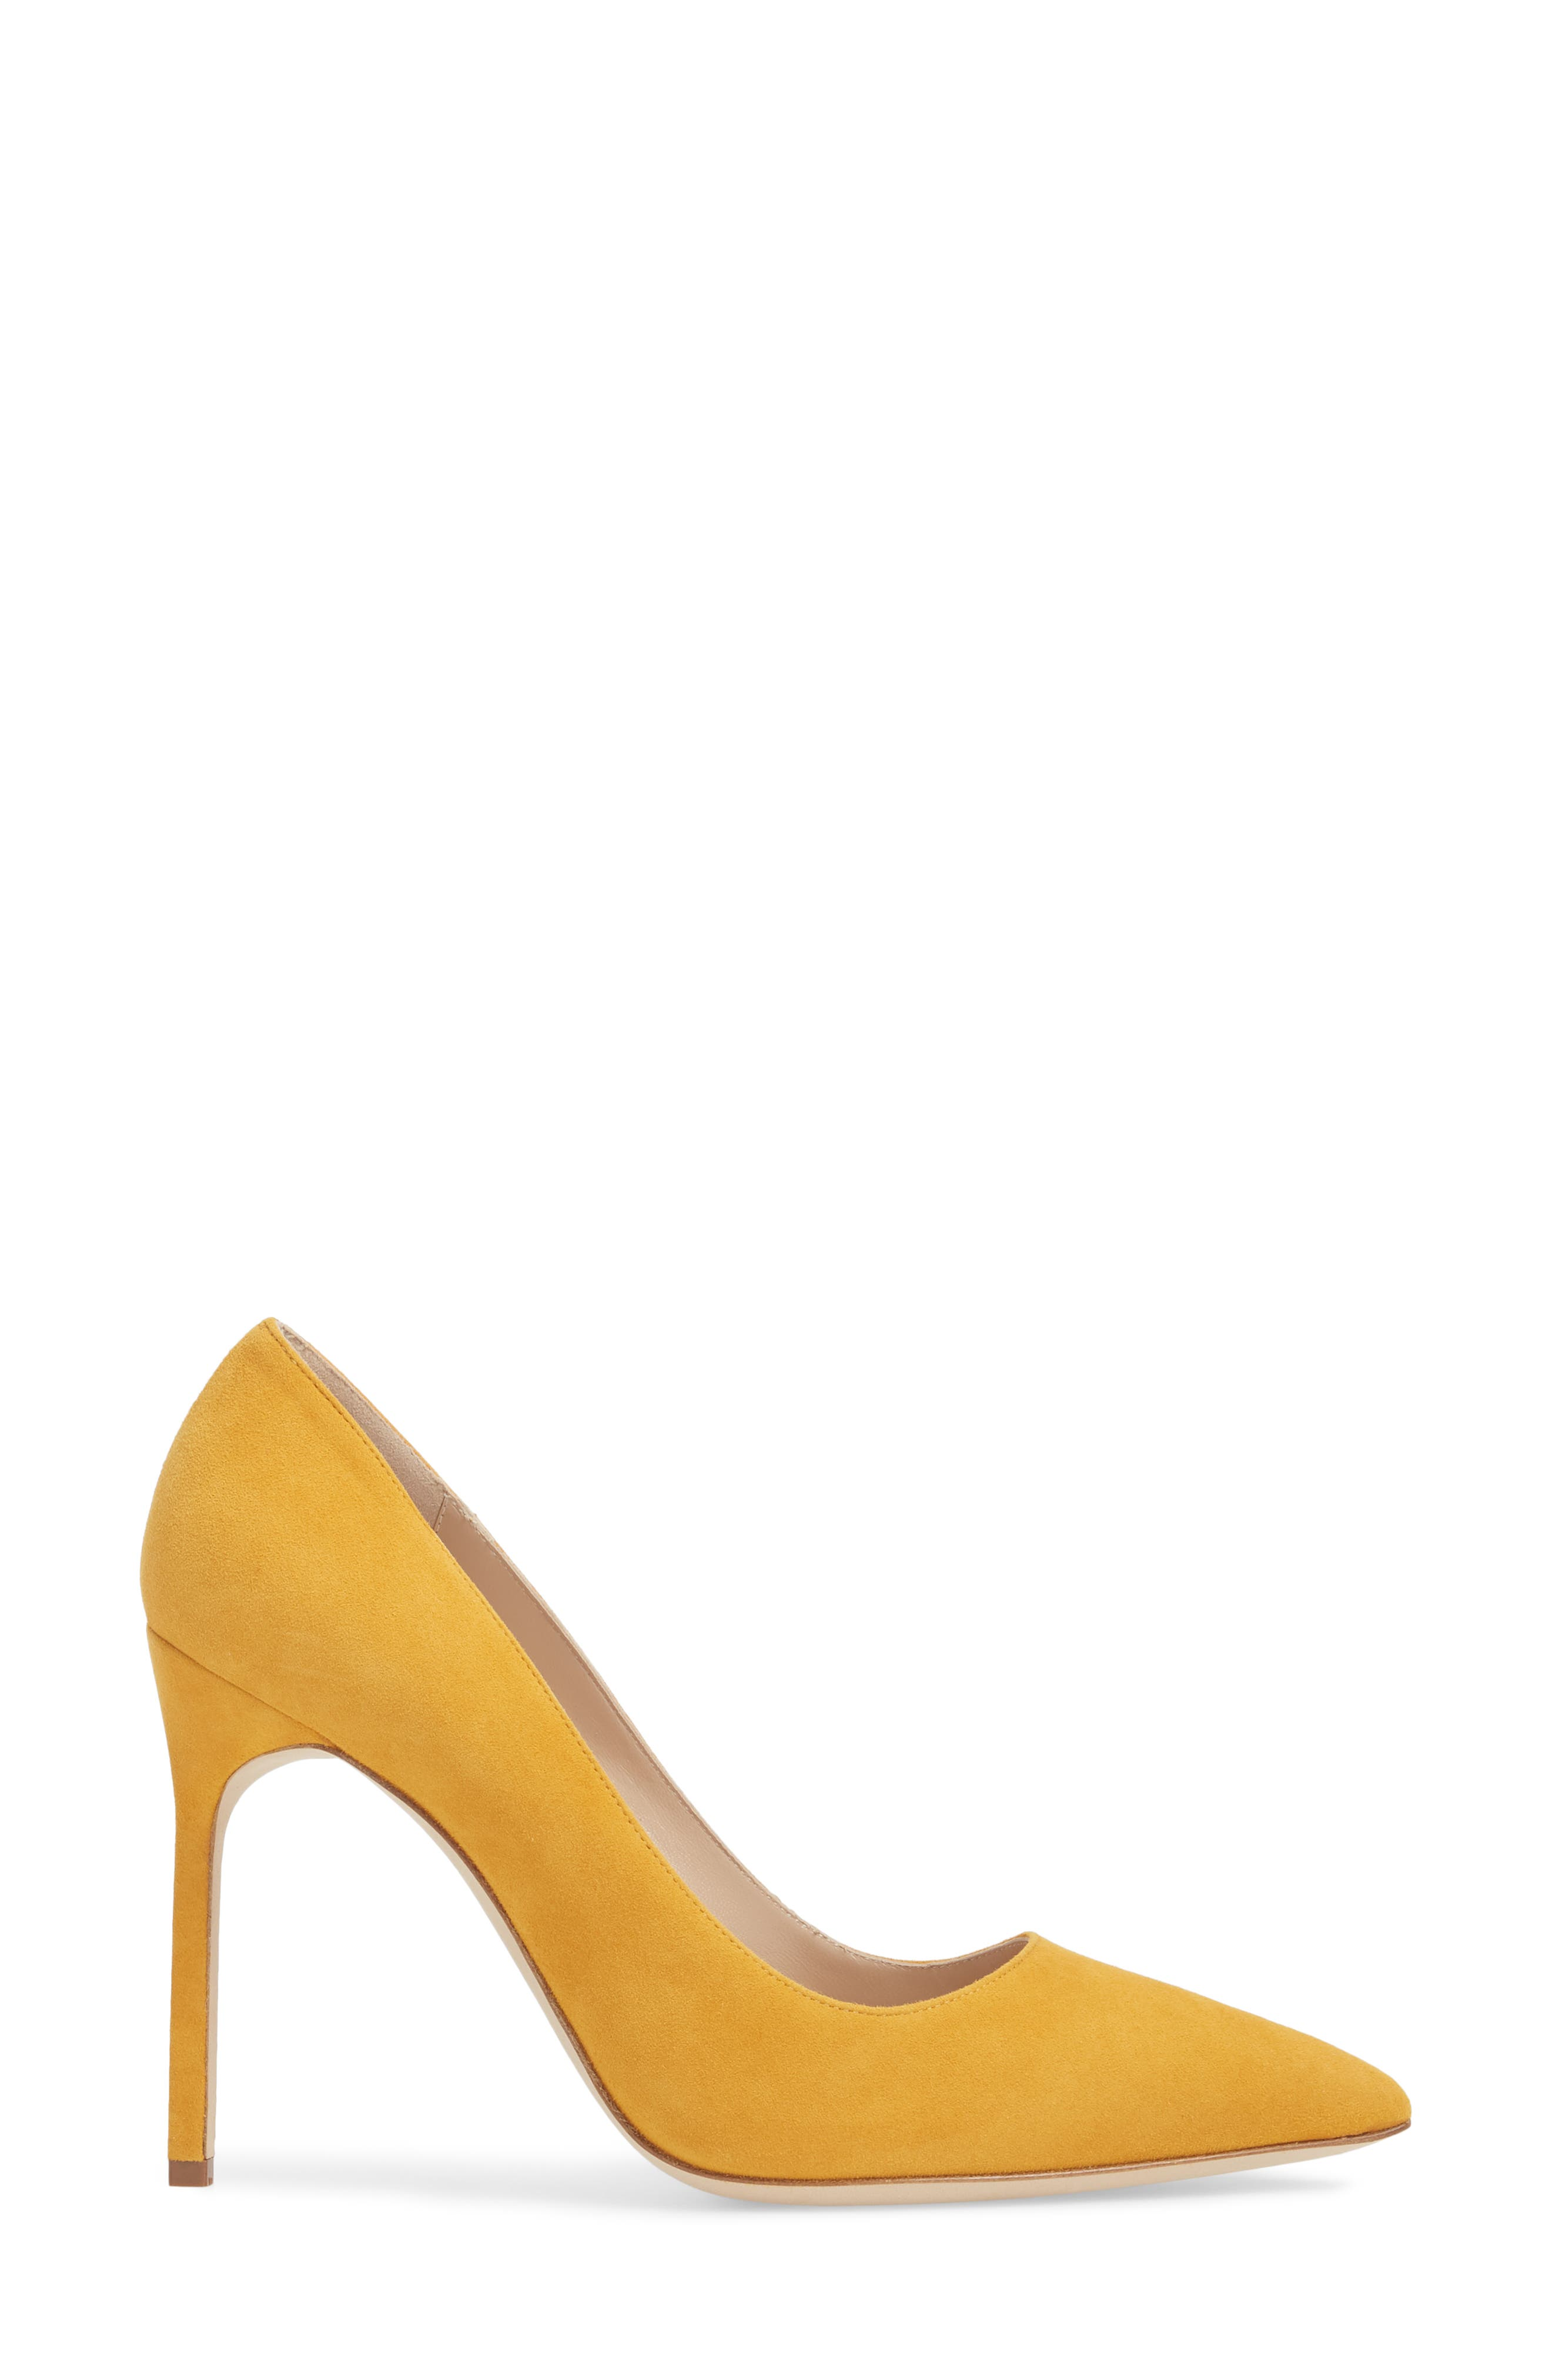 'BB' Pointy Toe Pump,                             Alternate thumbnail 3, color,                             Arbor Yellow